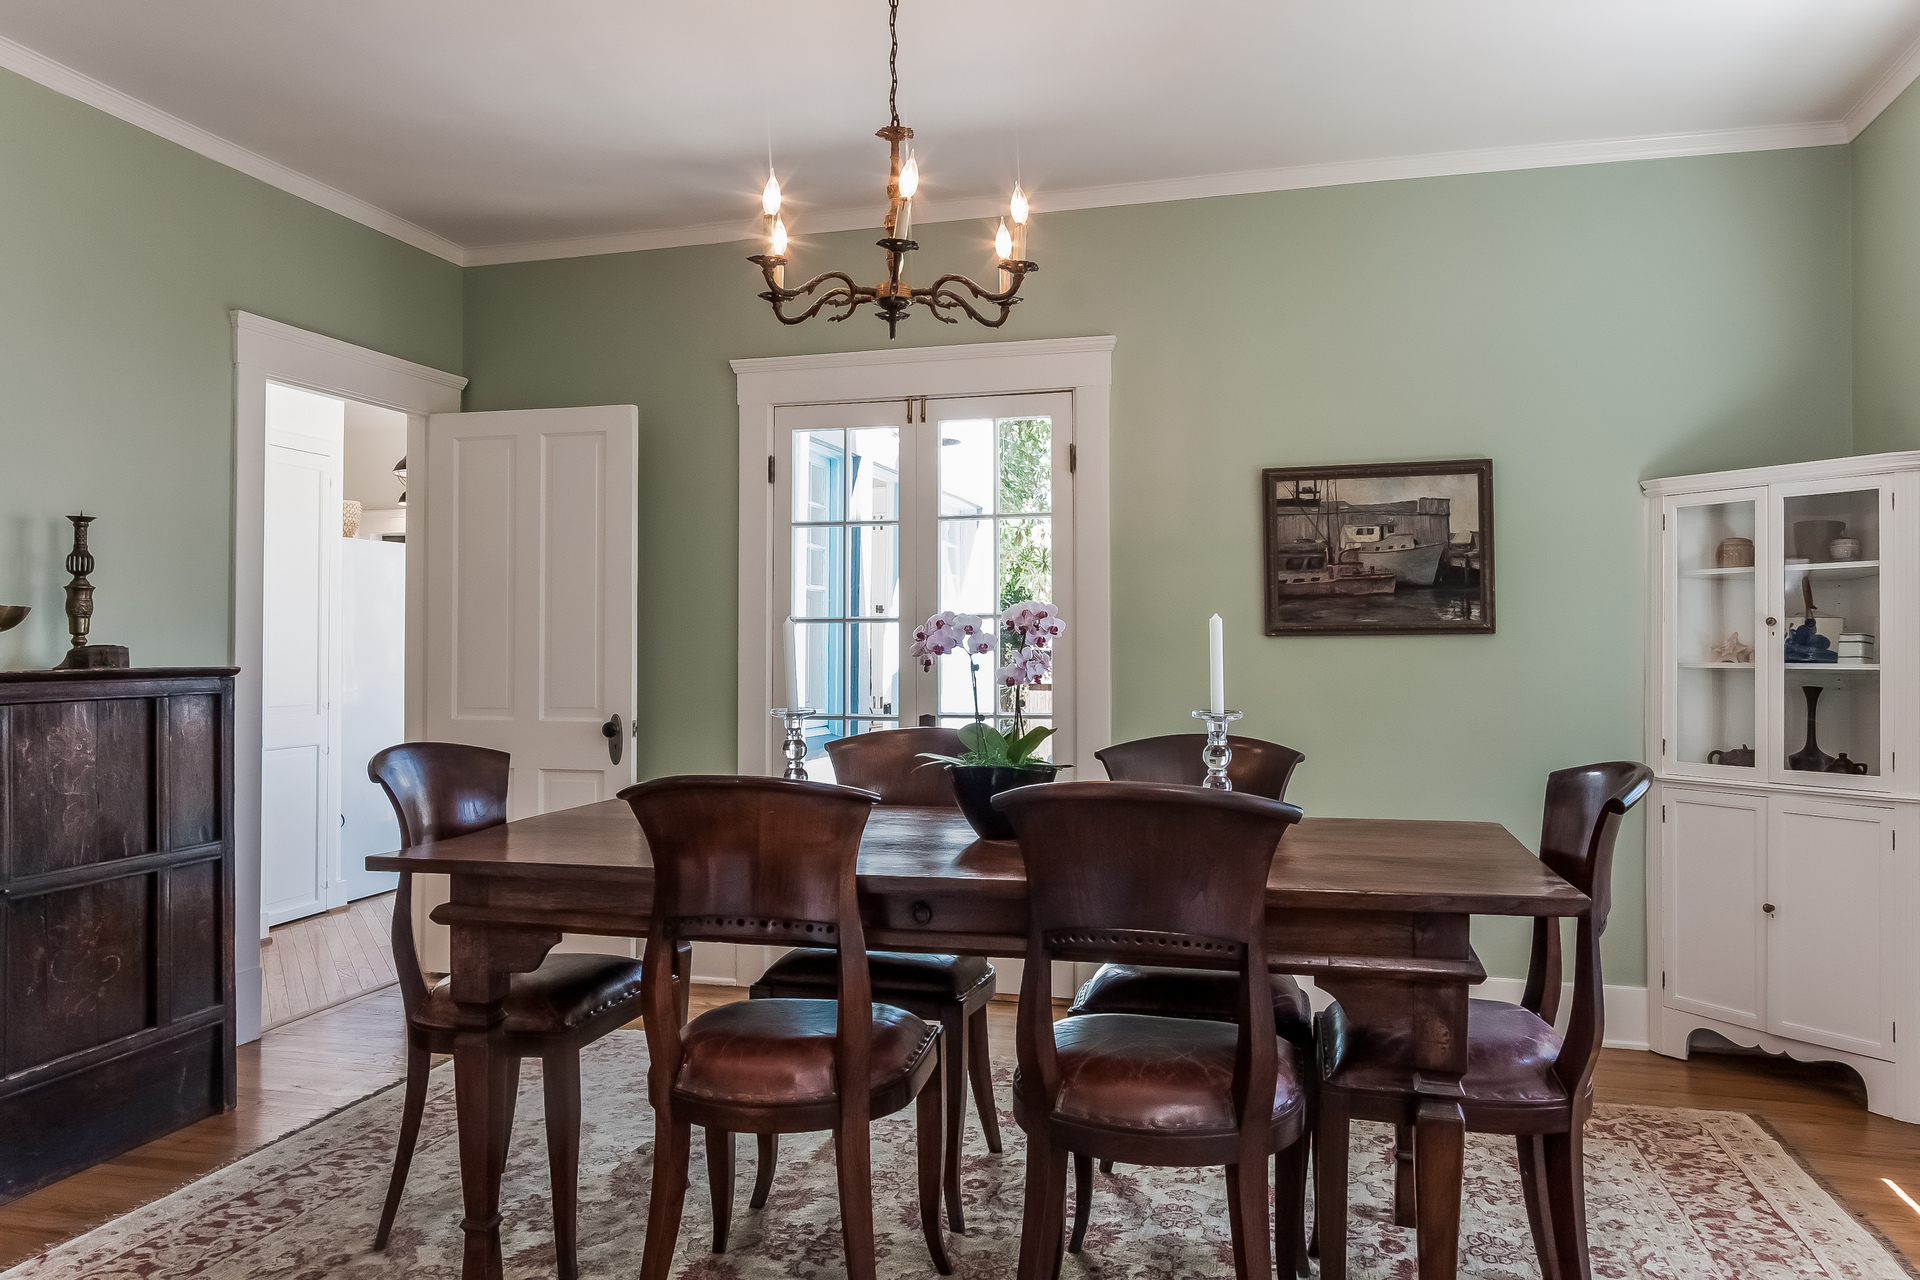 007-Dining_Room-1926860-medium.jpg